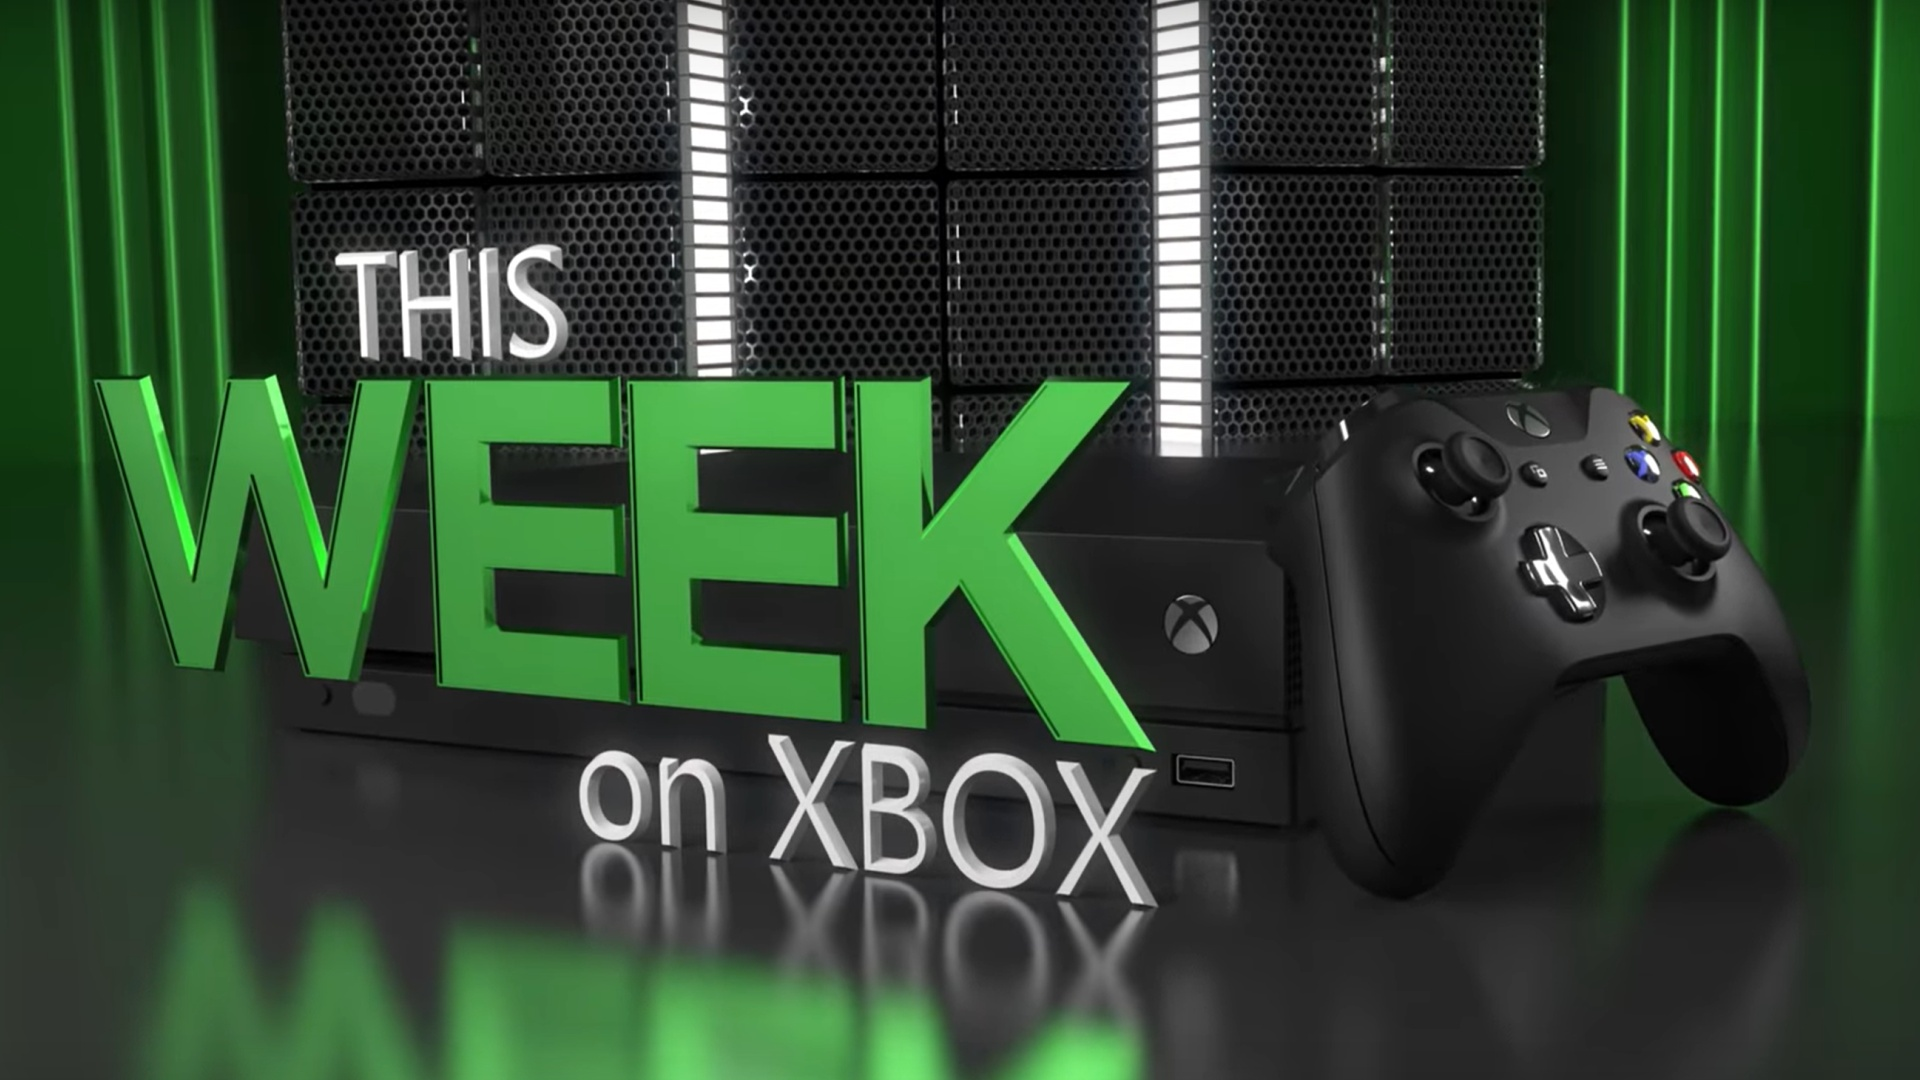 Video For This Week on Xbox: February 7, 2020